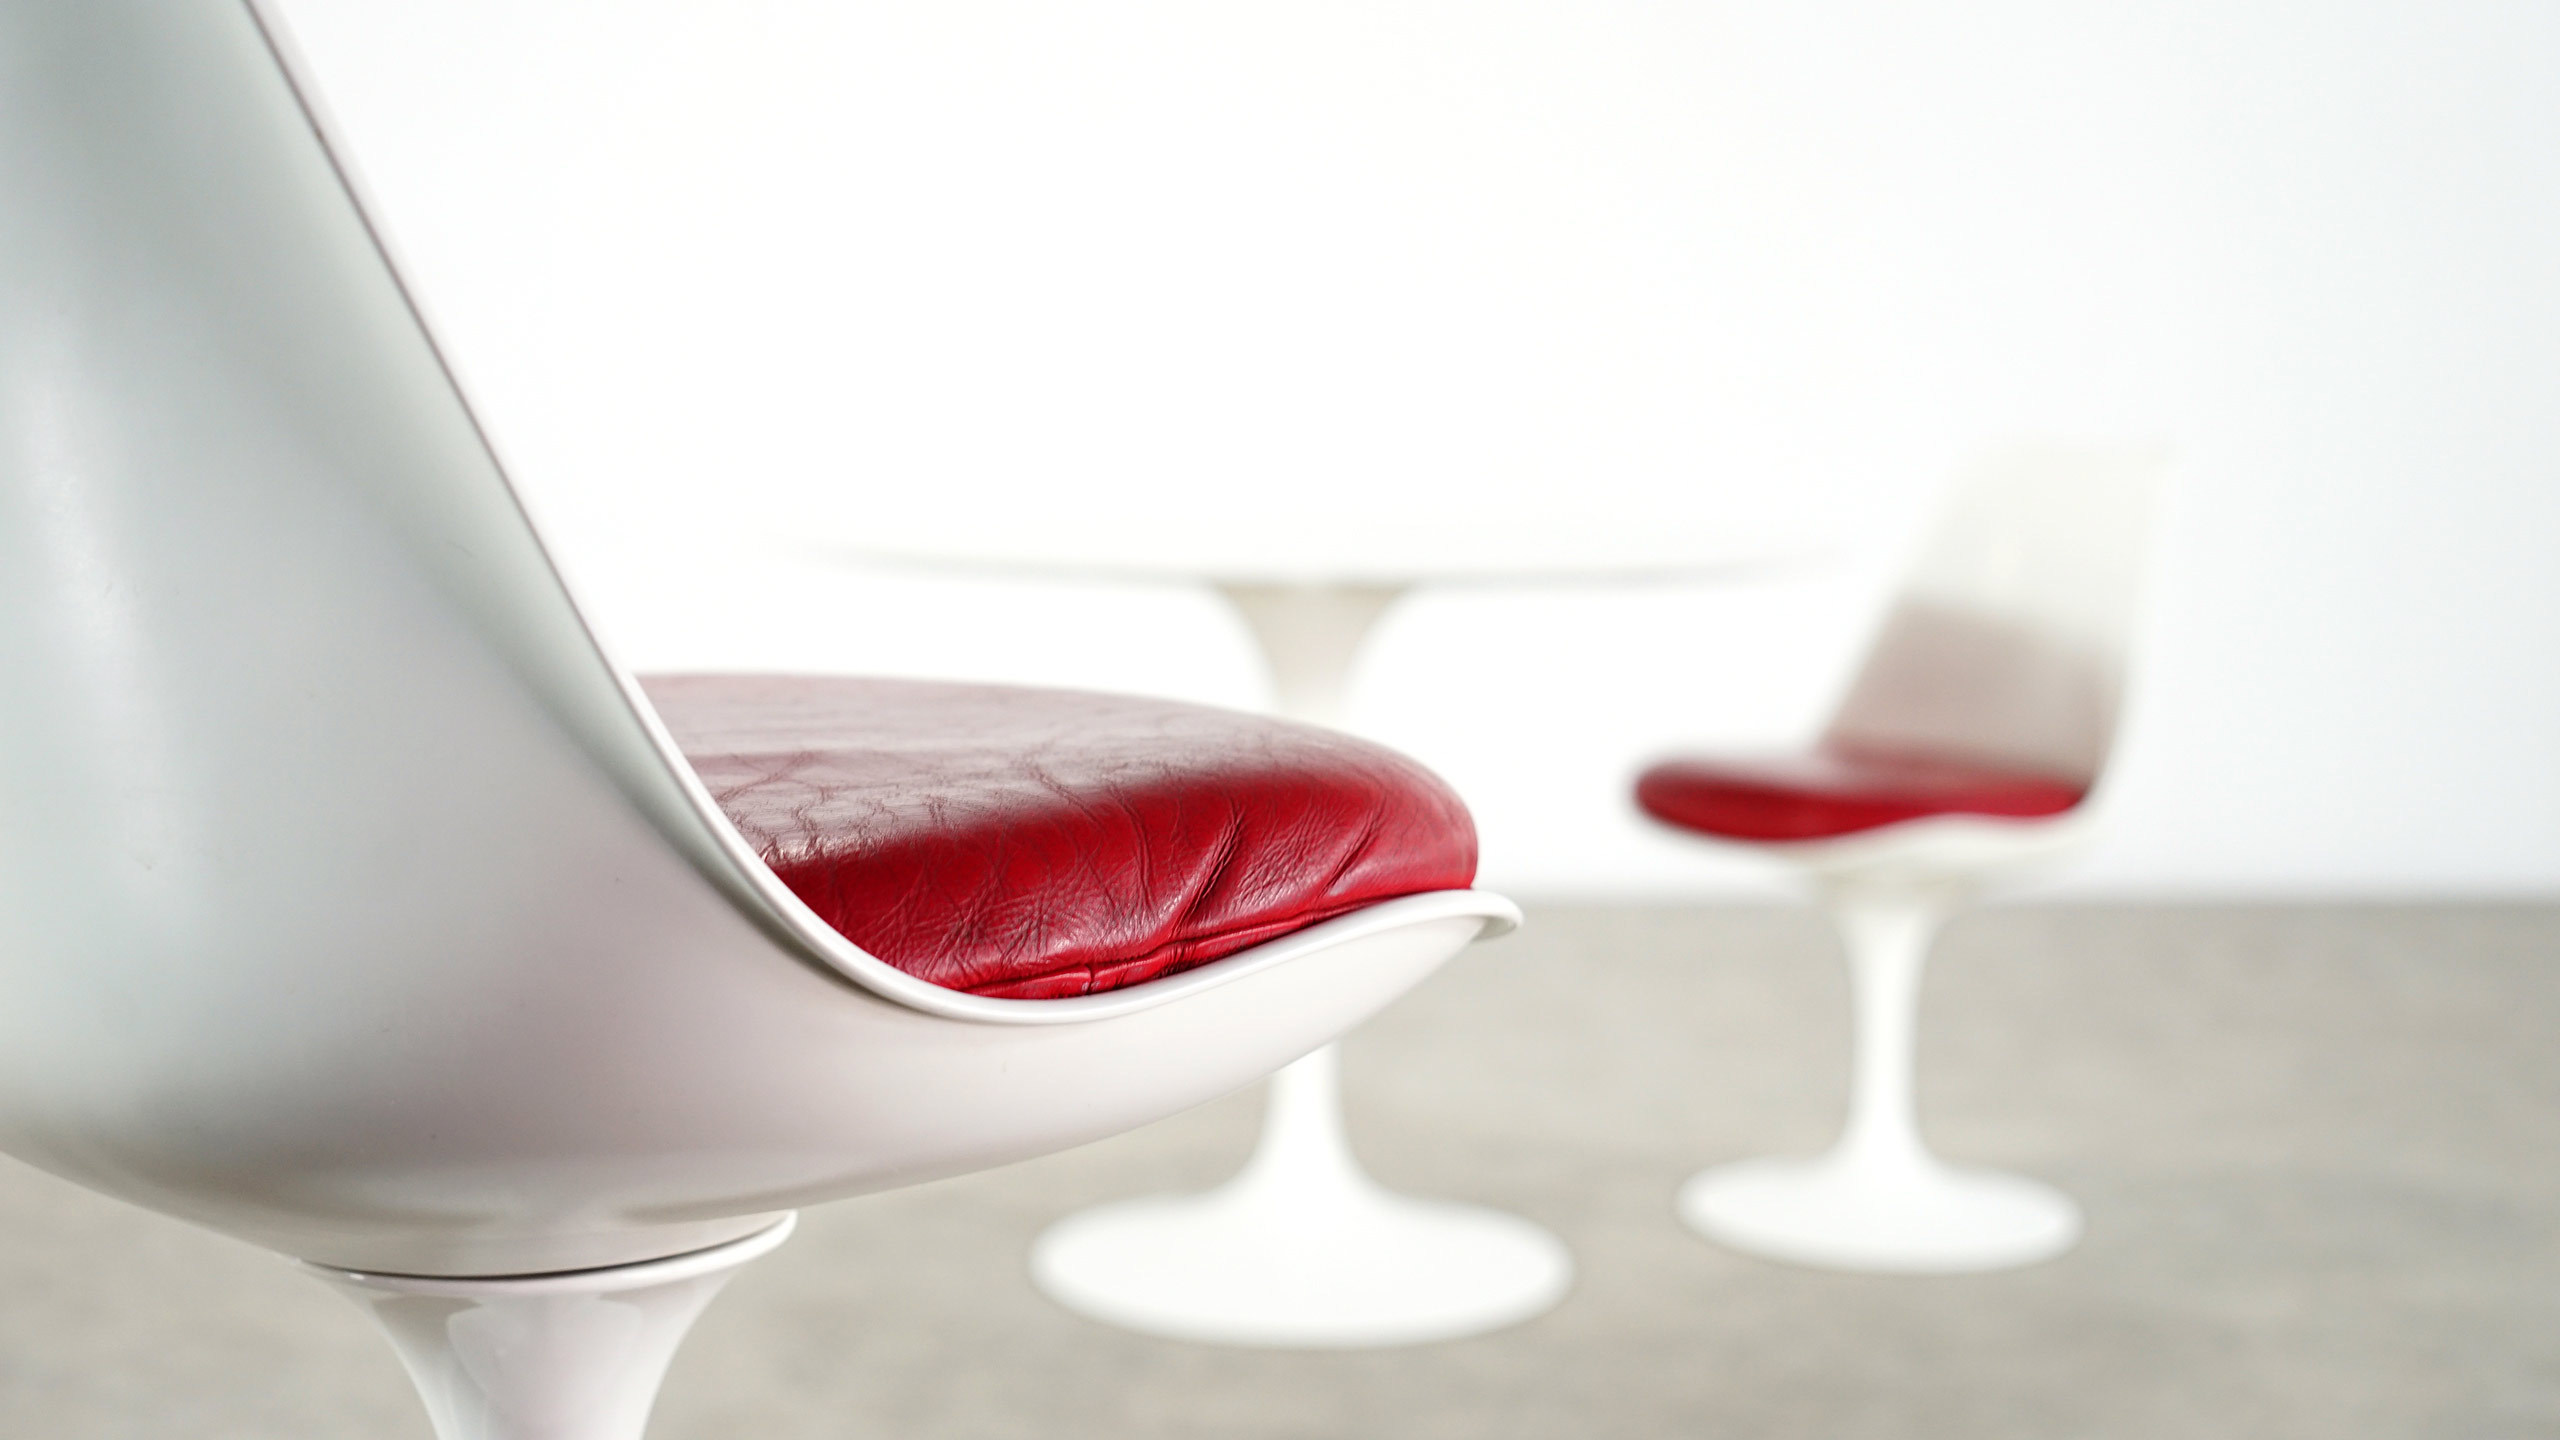 saarinen tulip chair. dimensions: w 19.29 inch, h 31.89 d 20.87 inch: 49 cm, 81 53 cm; designer: eero saarinen; fabricant: knoll international; prix: 3800,-\u20ac saarinen tulip chair